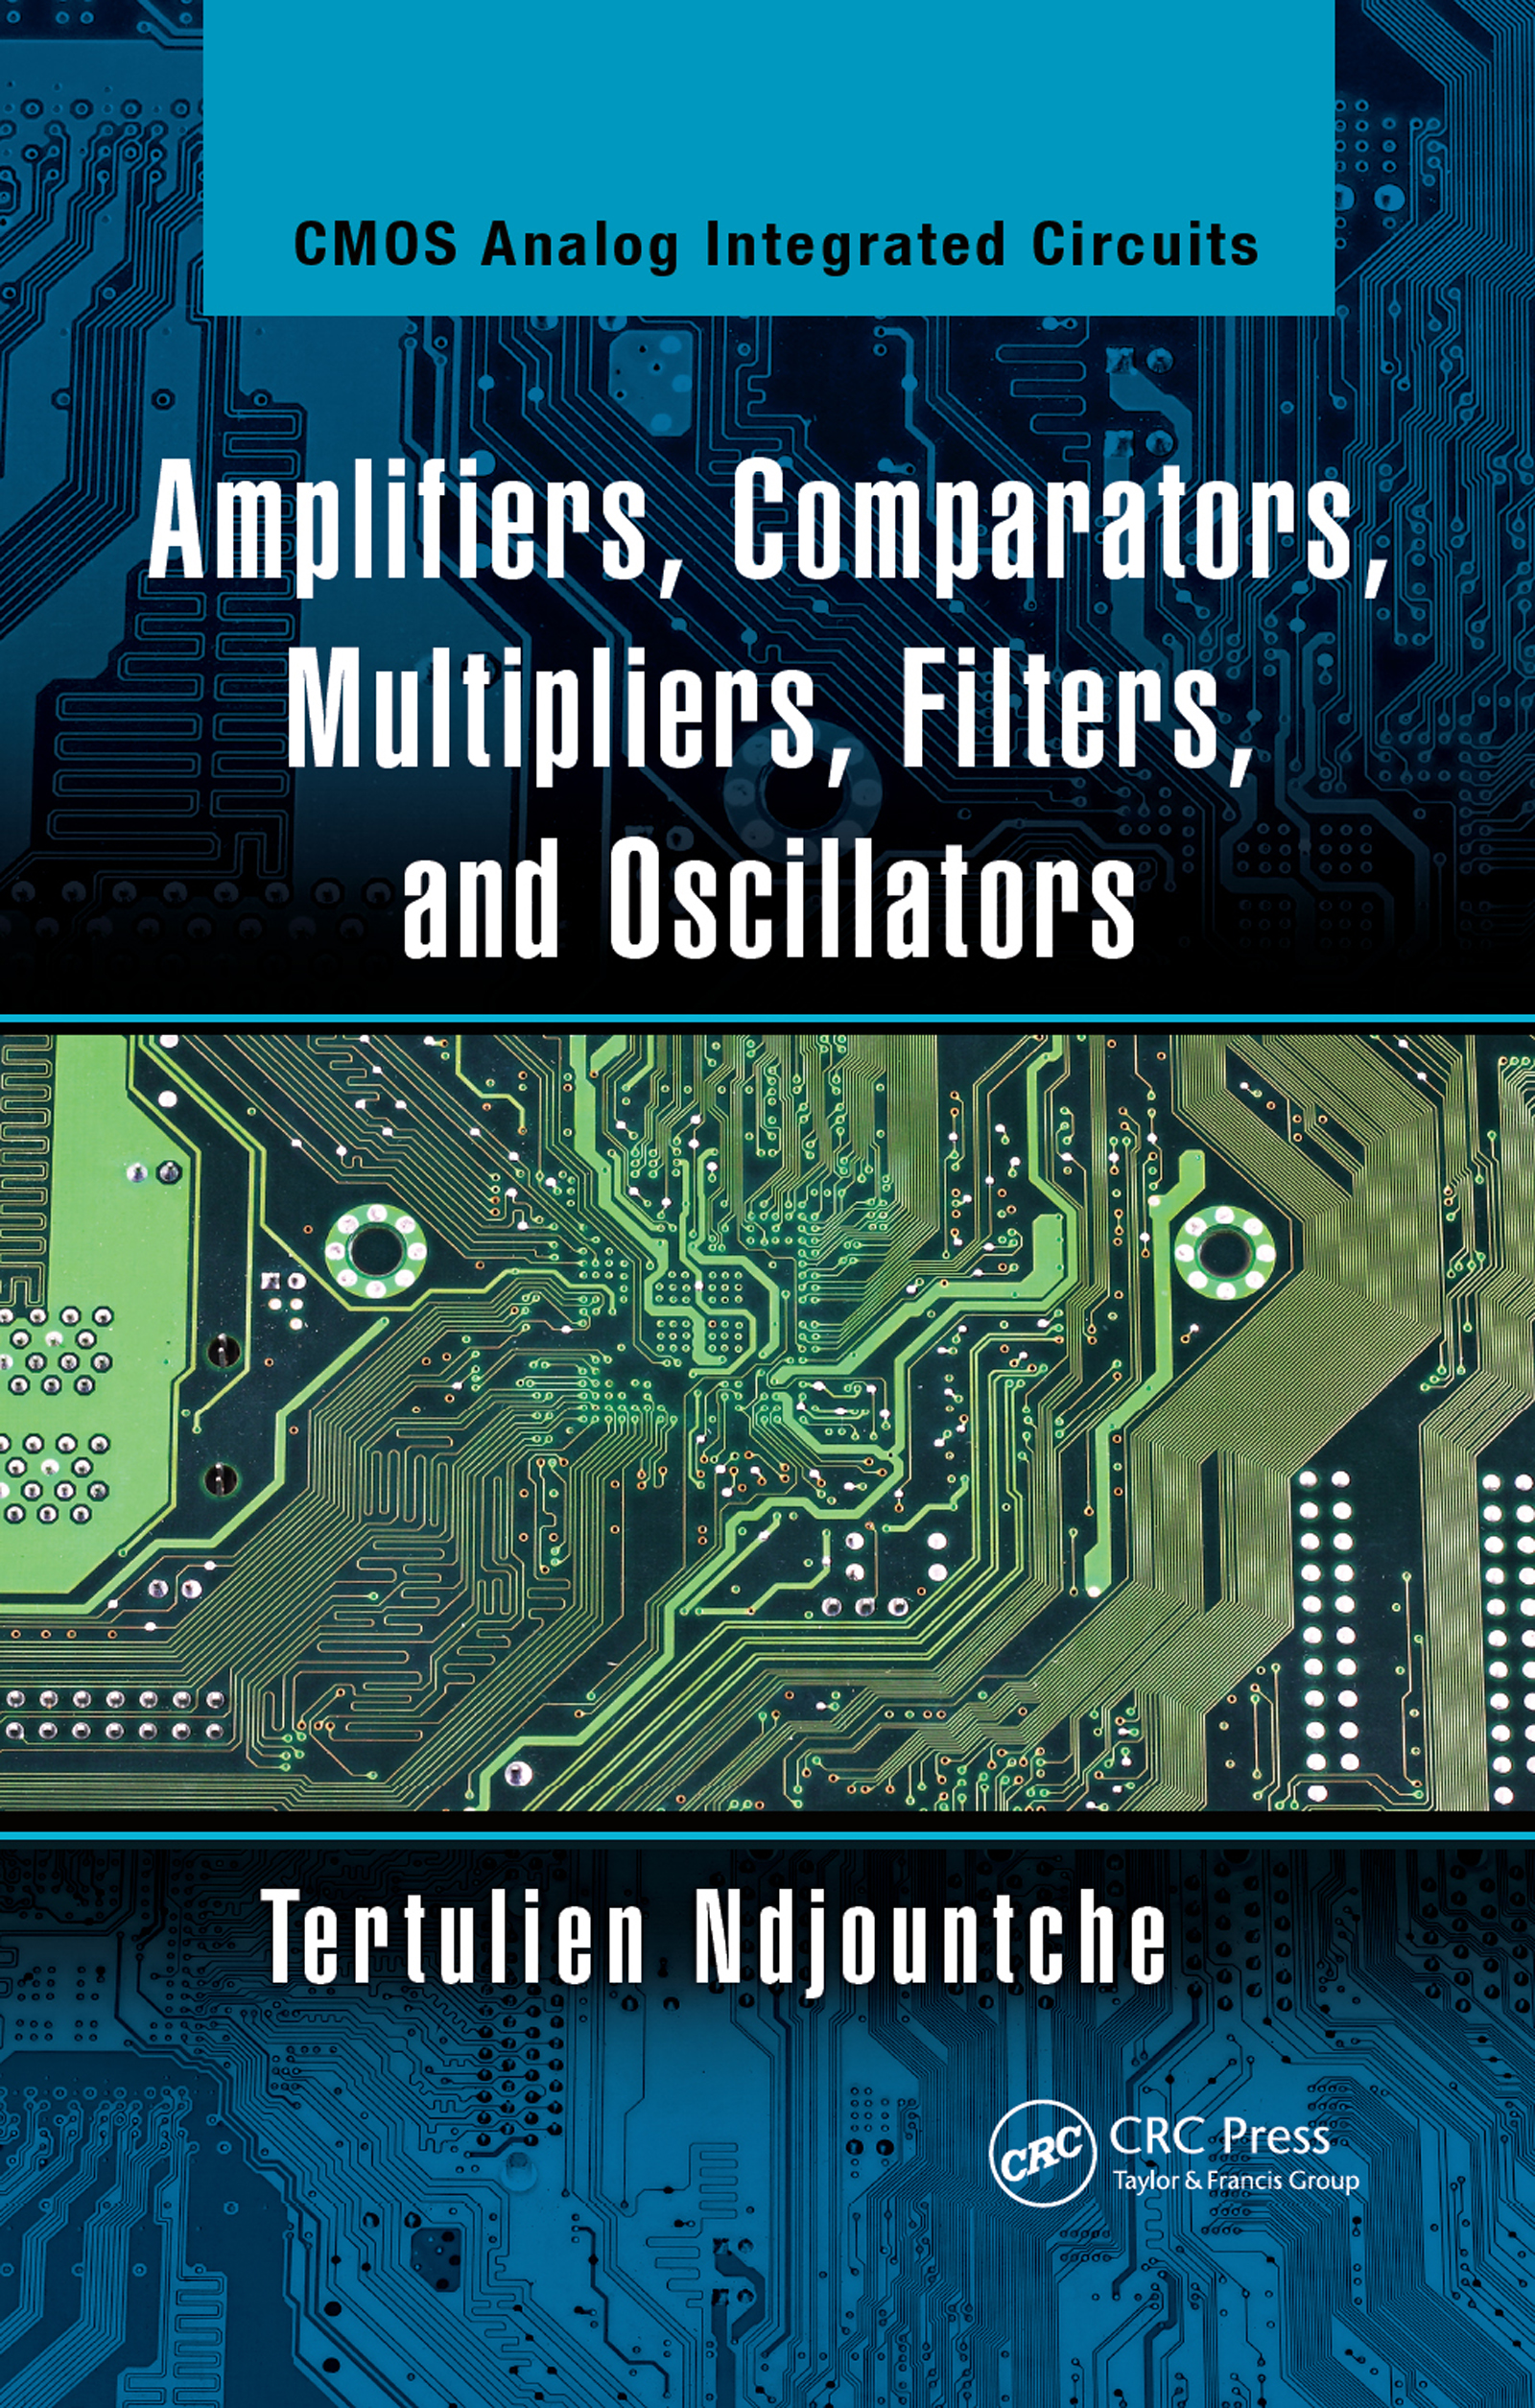 Amplifiers, Comparators, Multipliers, Filters, and Oscillators